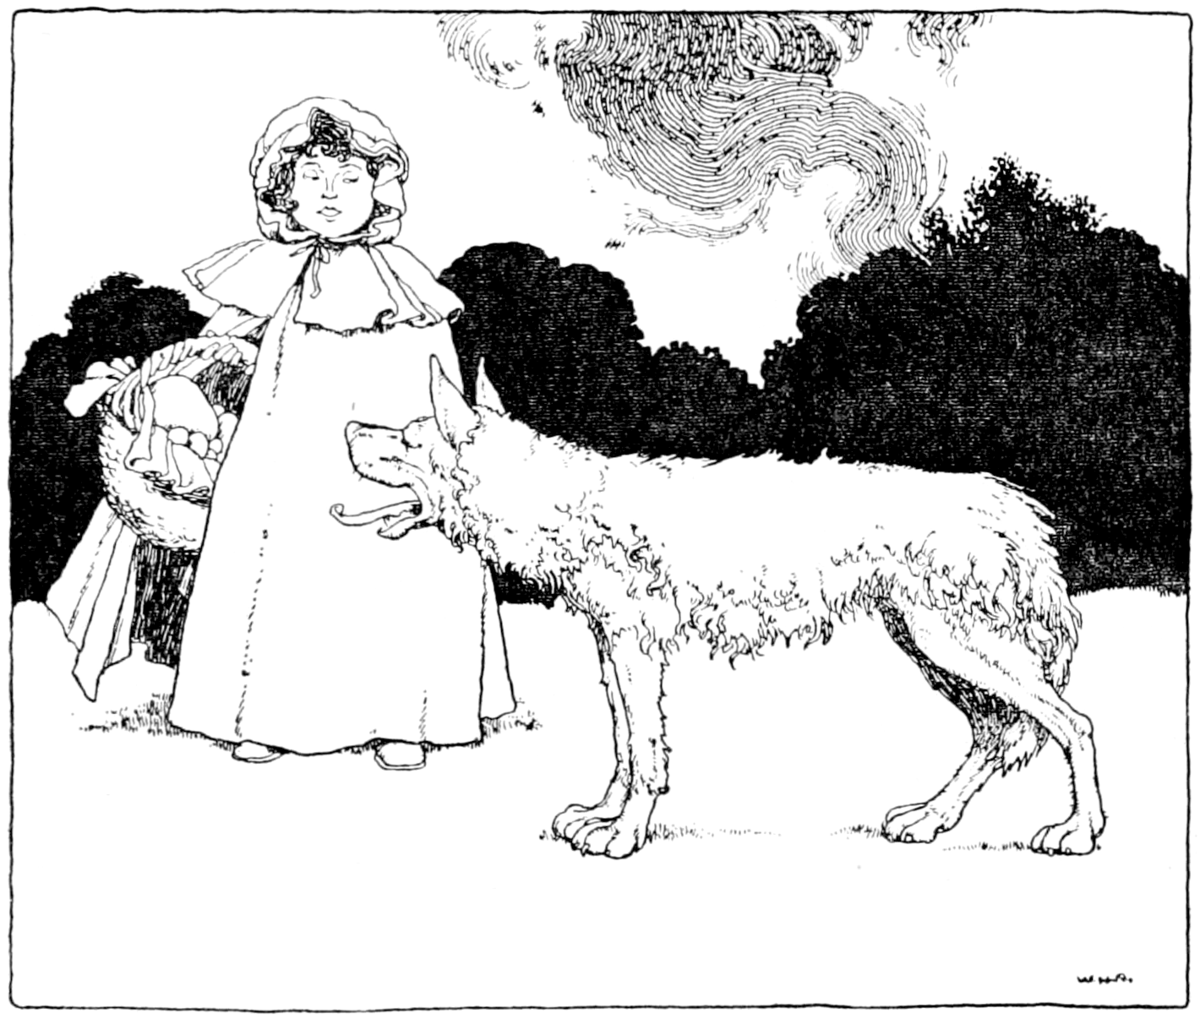 File:Page 095 of Old time stories (Perrault, Robinson).png